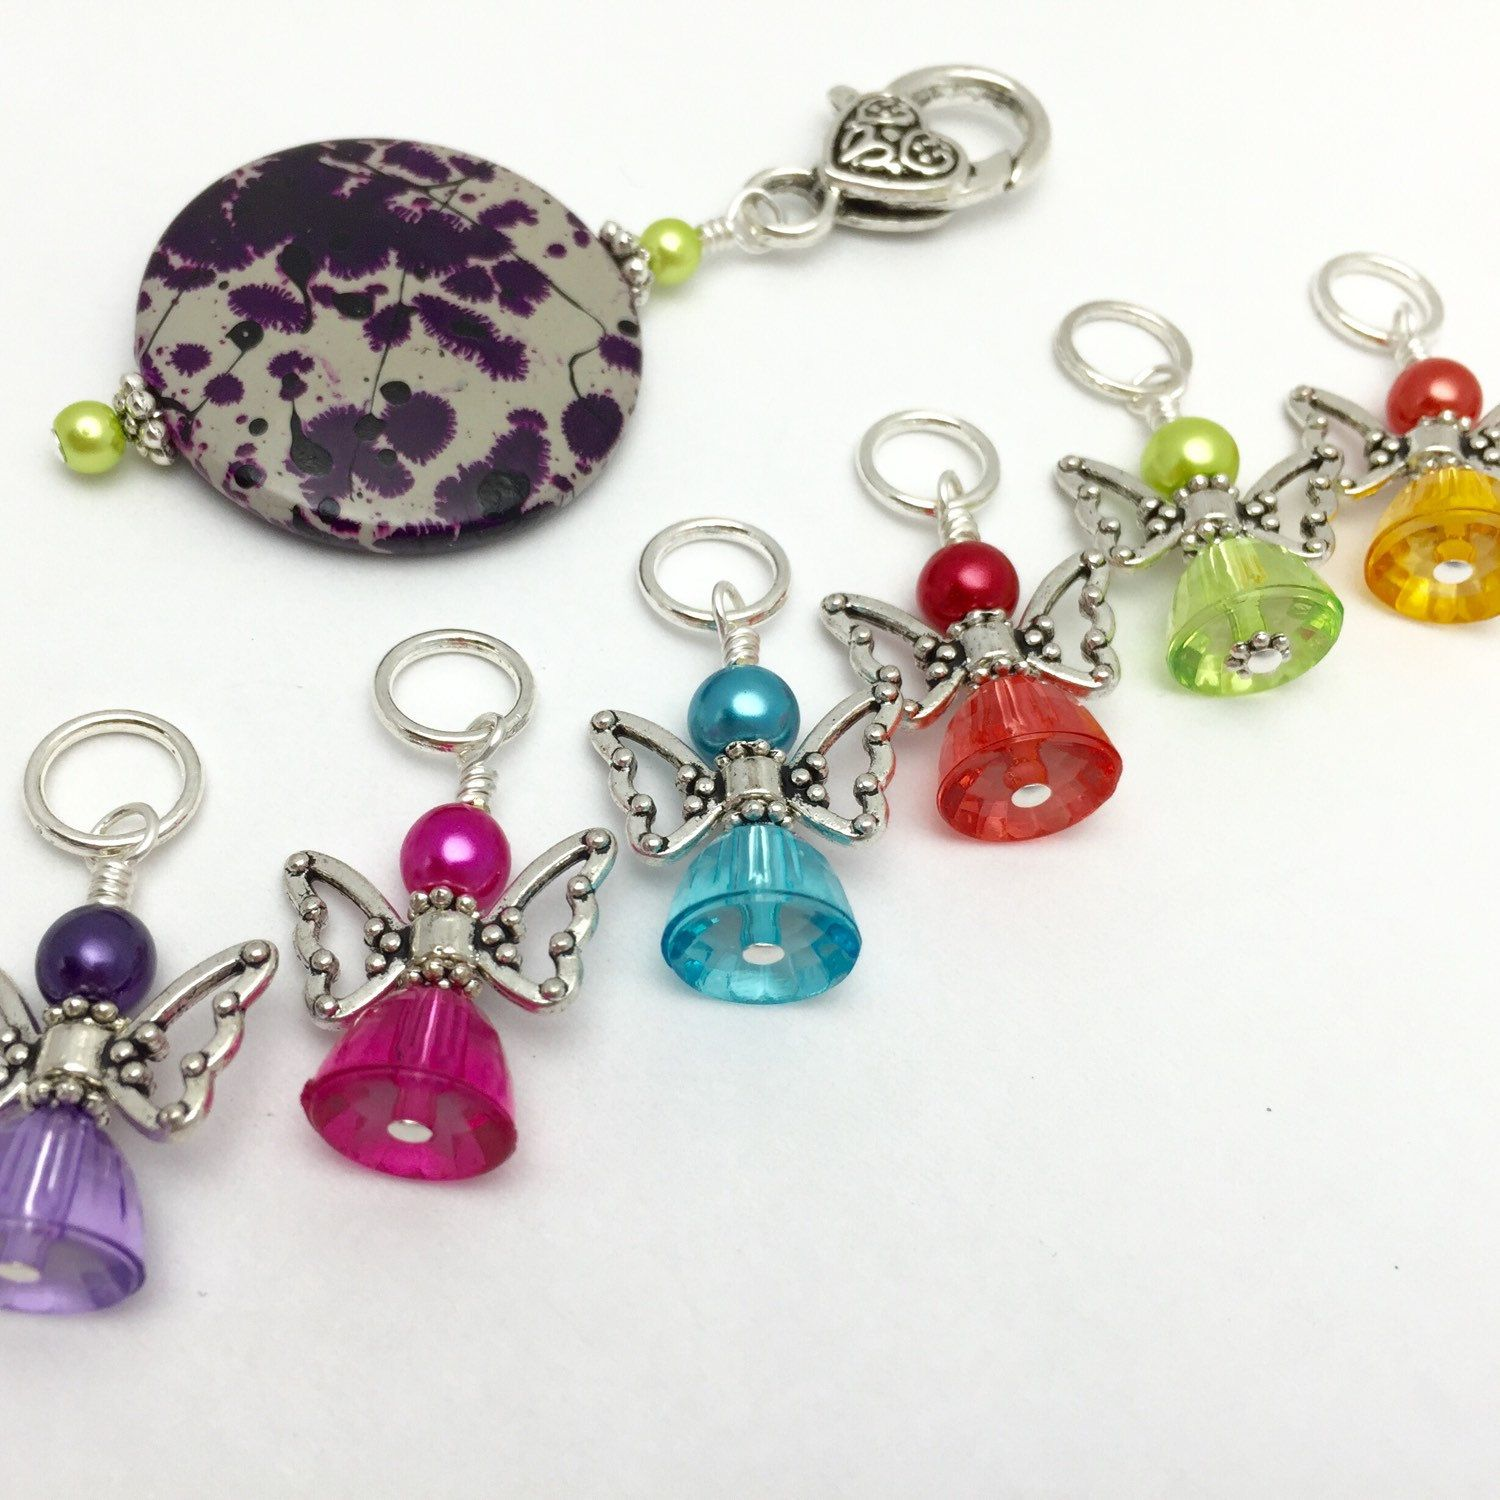 Beaded gumdrop angel stitch marker charms holder gift for beaded gumdrop angel stitch marker charms holder gift for knitters snag free knitting jewelry bankloansurffo Images